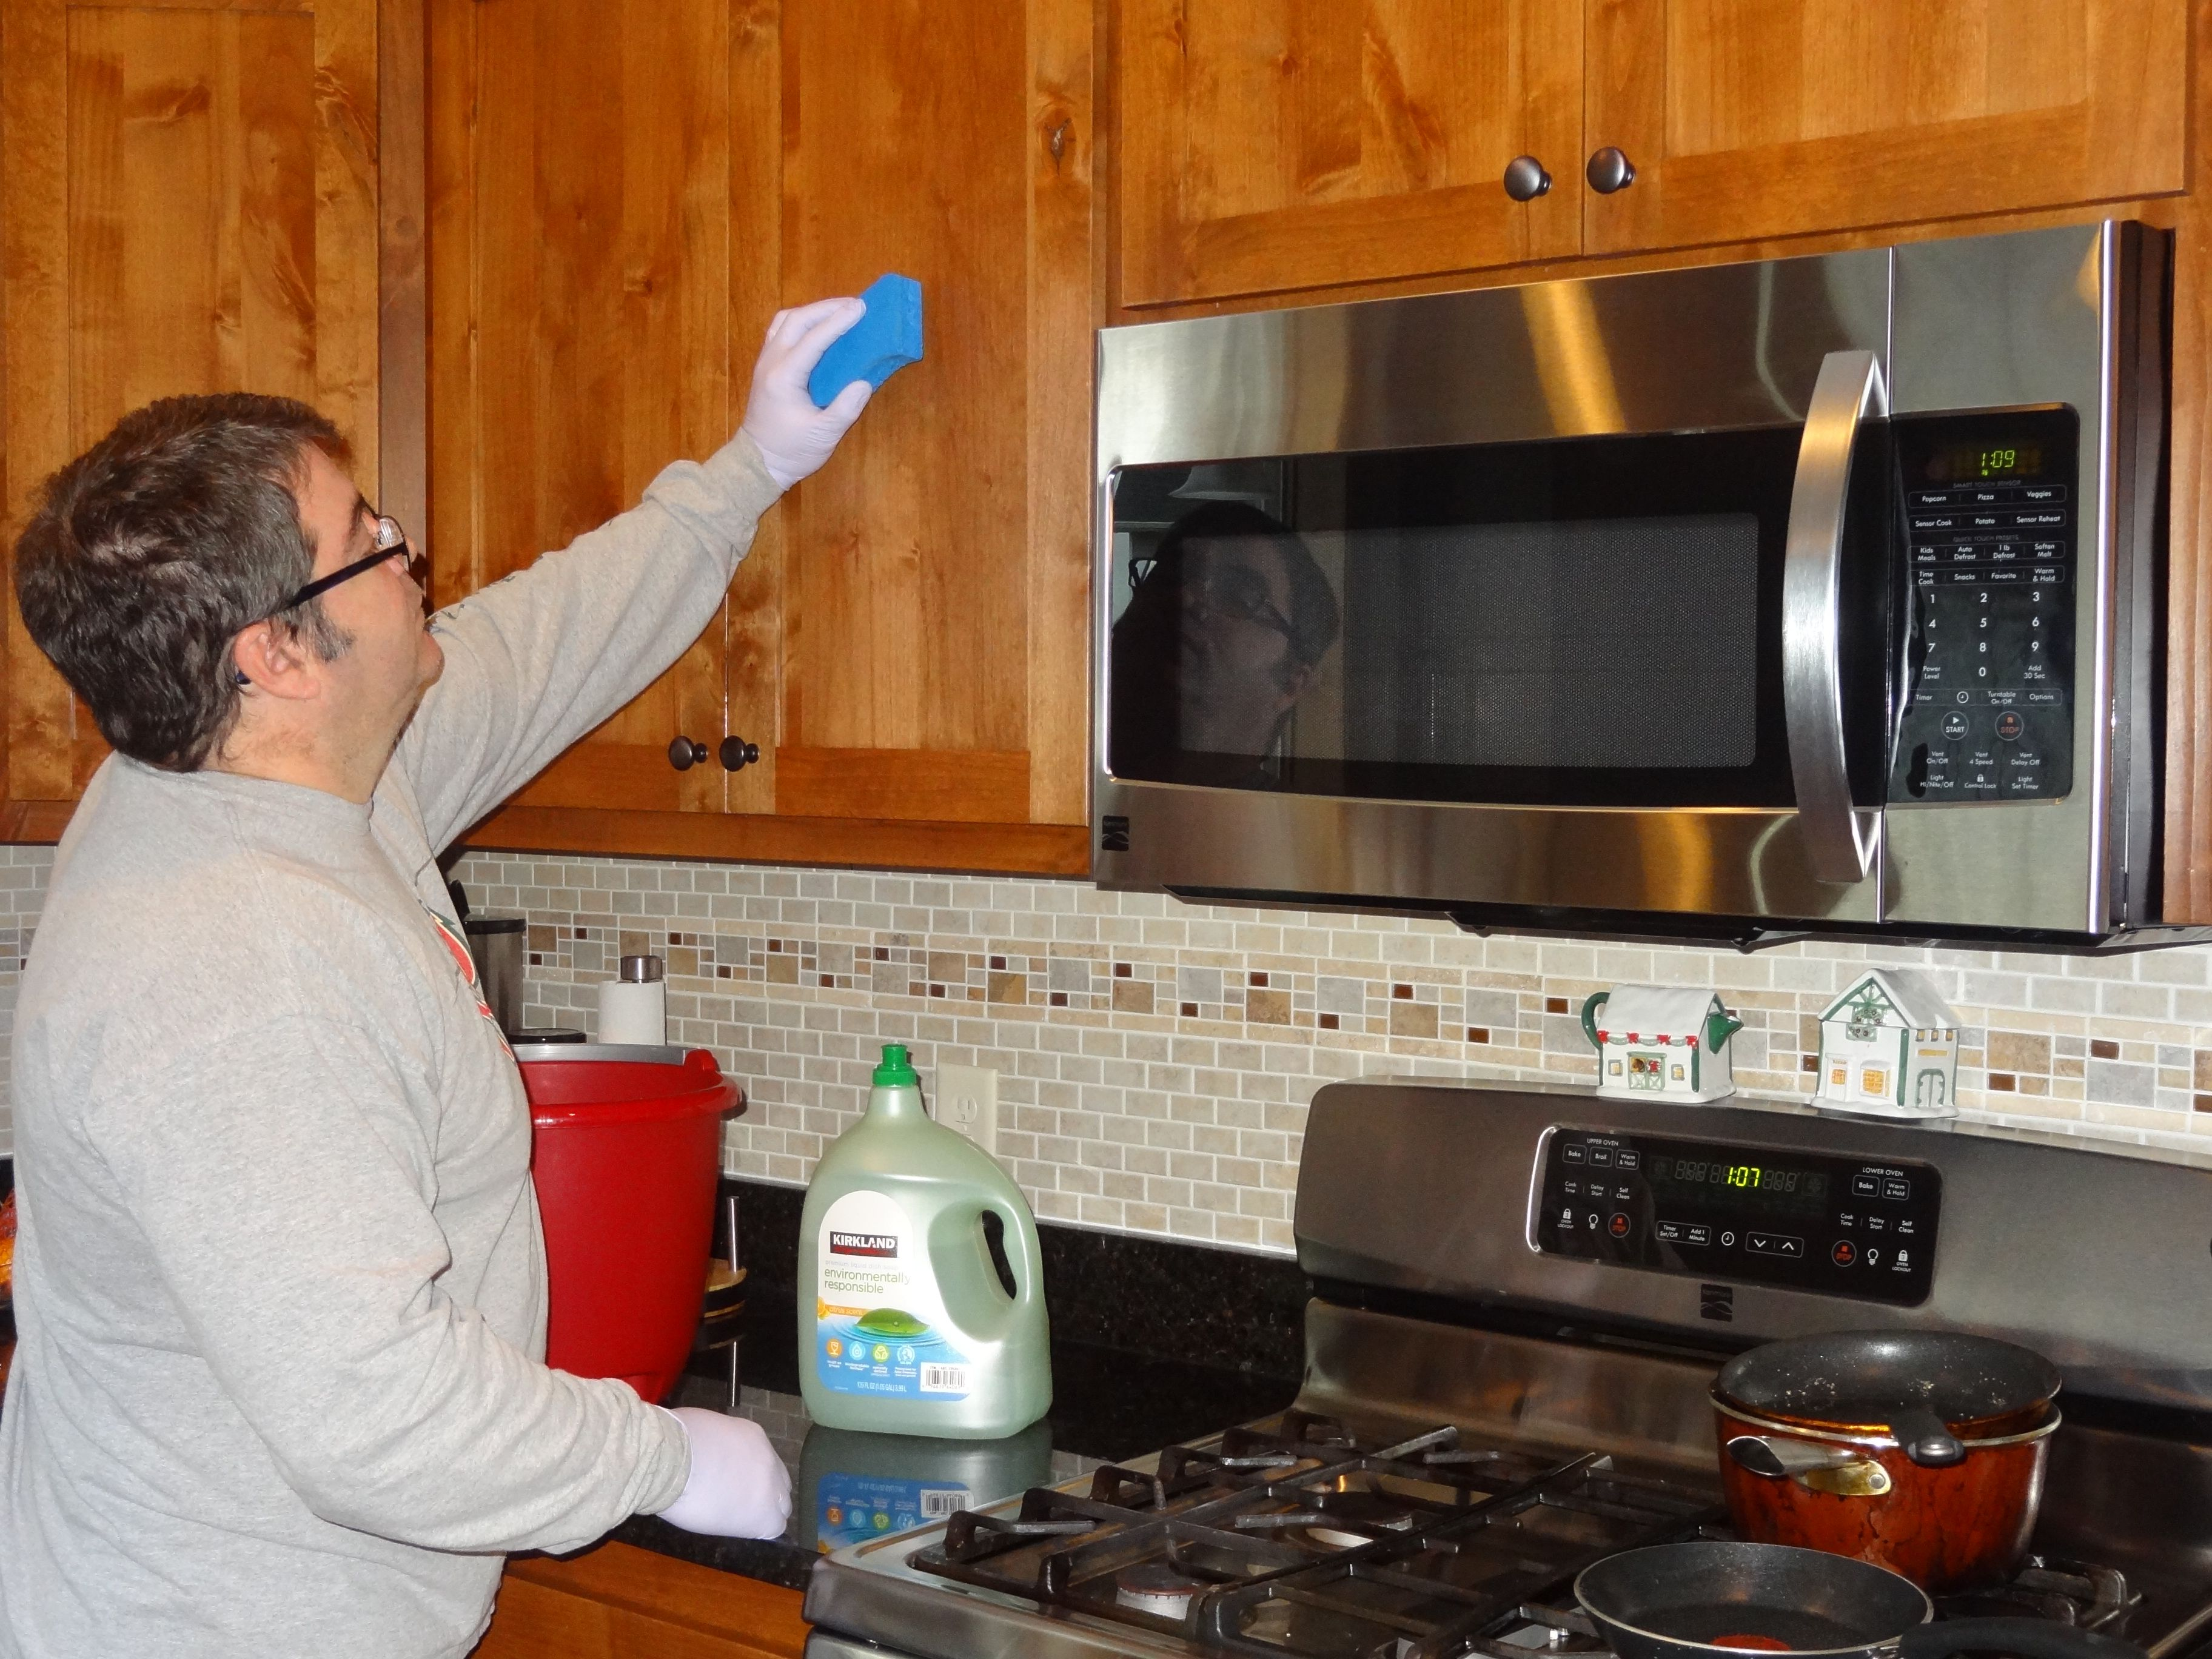 With All The Cooking And Frying That Goes On In The Kitchen, Grease Gets  Splattered Onto Cabinets And Steam Leaves A Film On Wooden Surfaces.